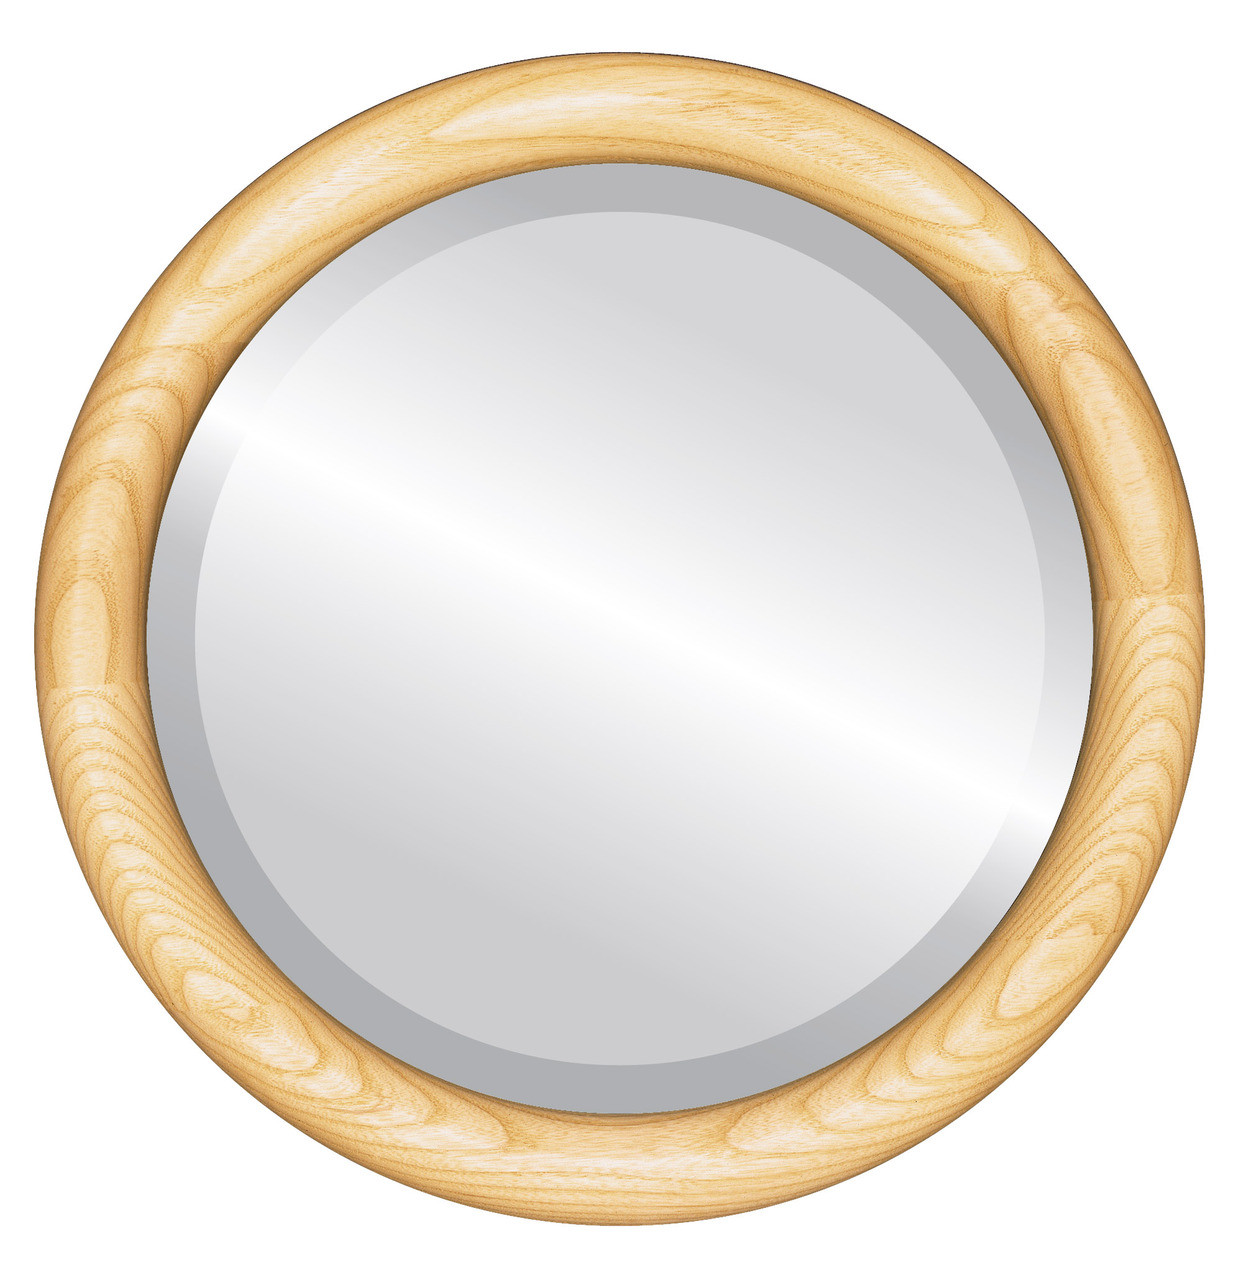 Brown Round Mirrors from $118| Sydney Honey Oak| Free Shipping